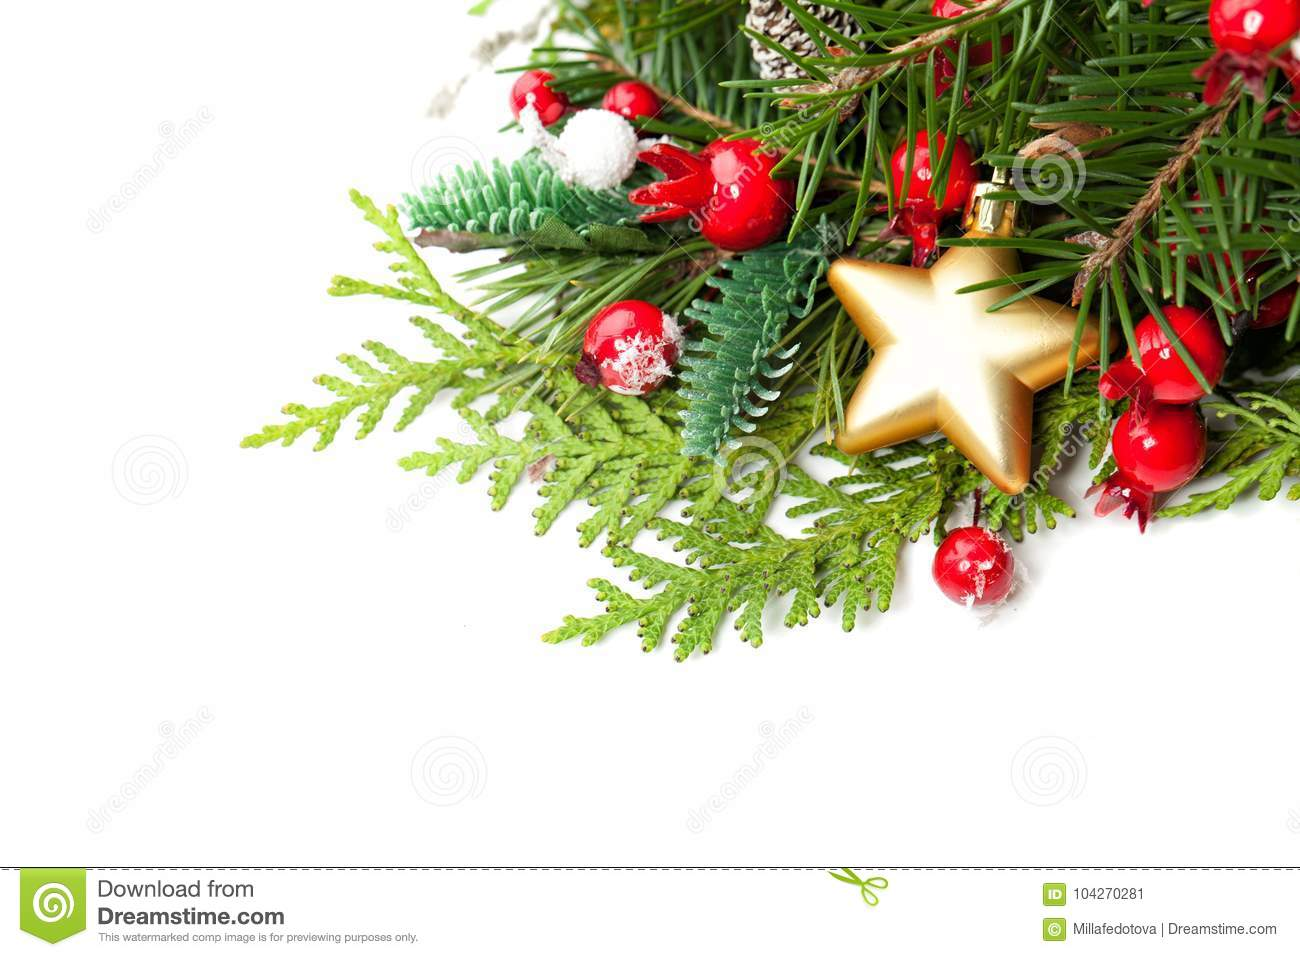 christmas decor evergreen xmas tree gold star and red berries on white background new year christmas background with copy space